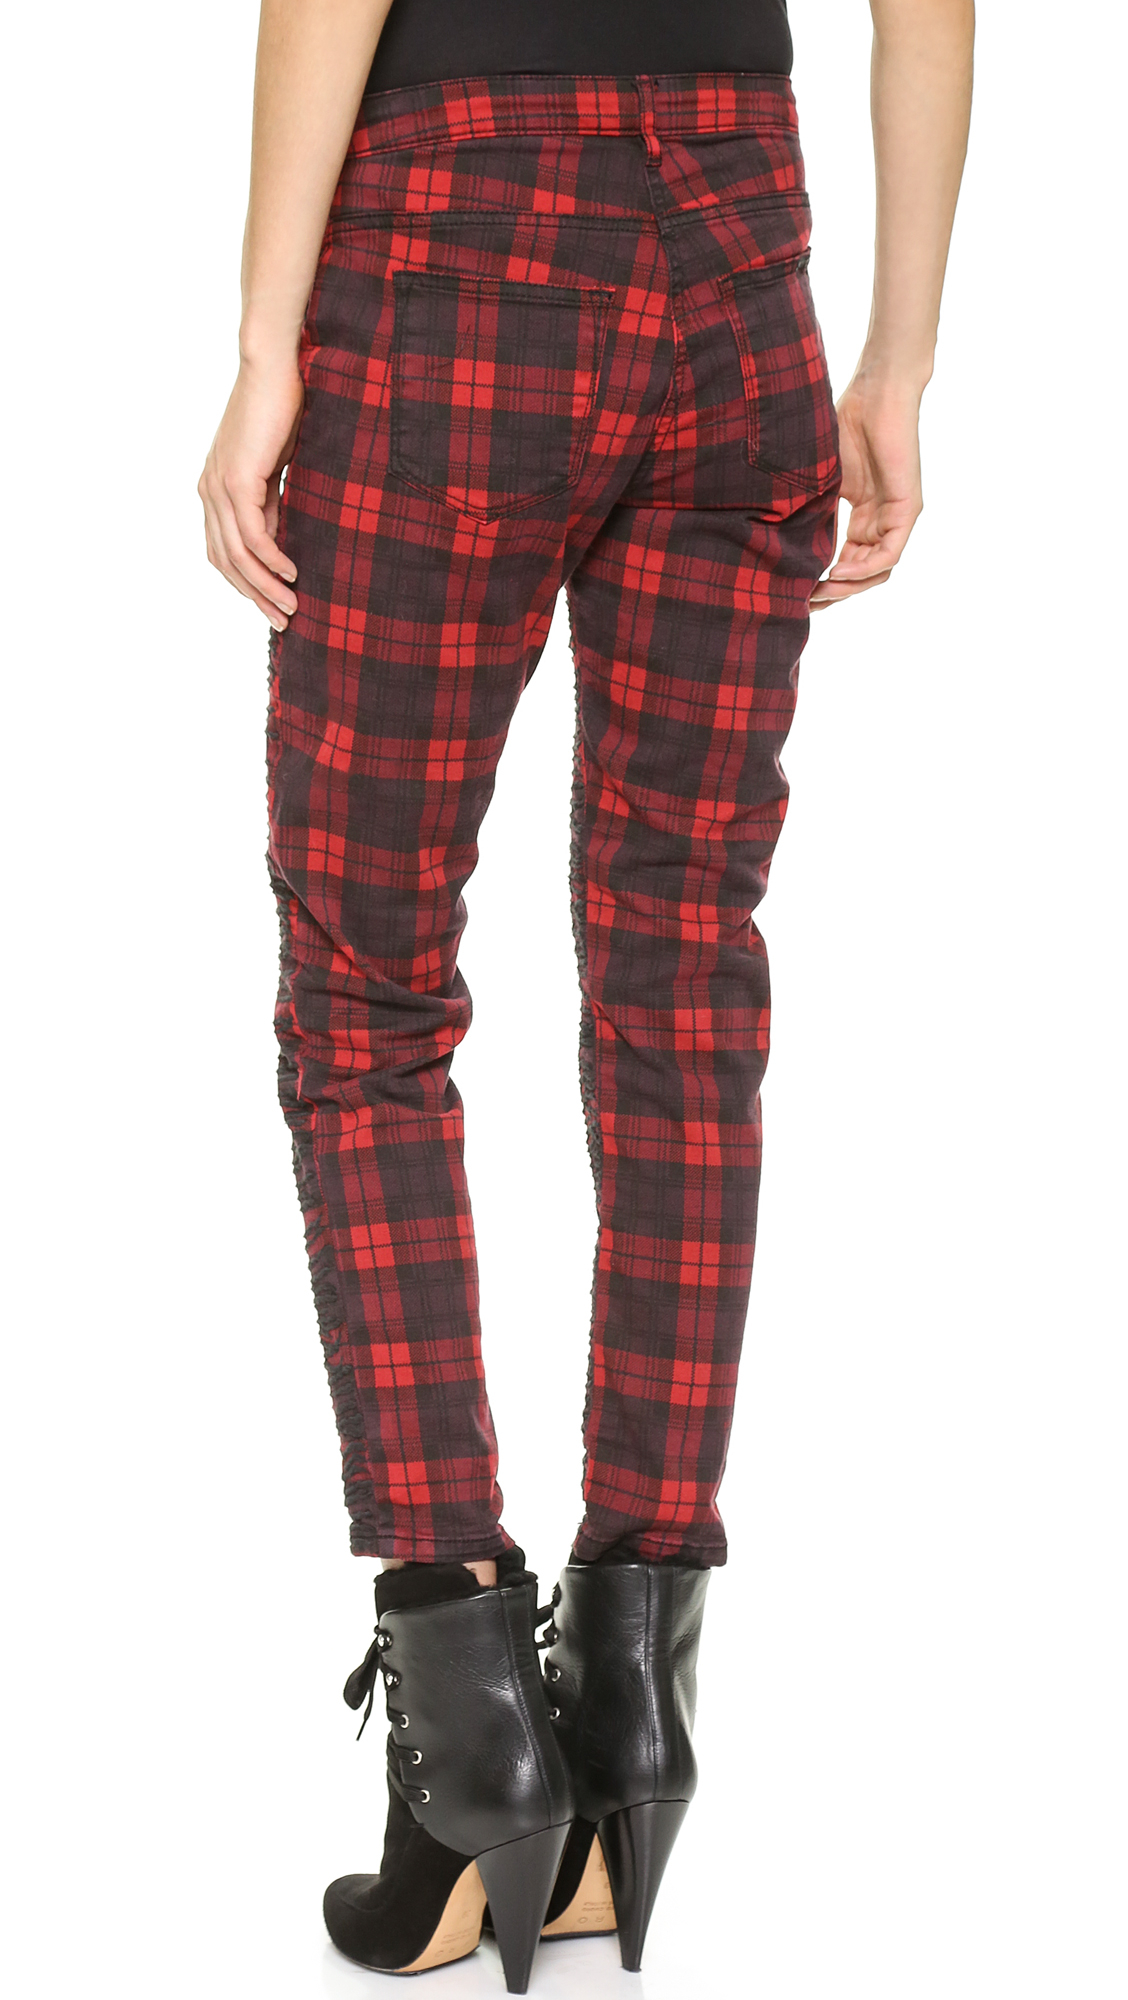 Maison scotch Plaid Pants - Black/Red in Red | Lyst